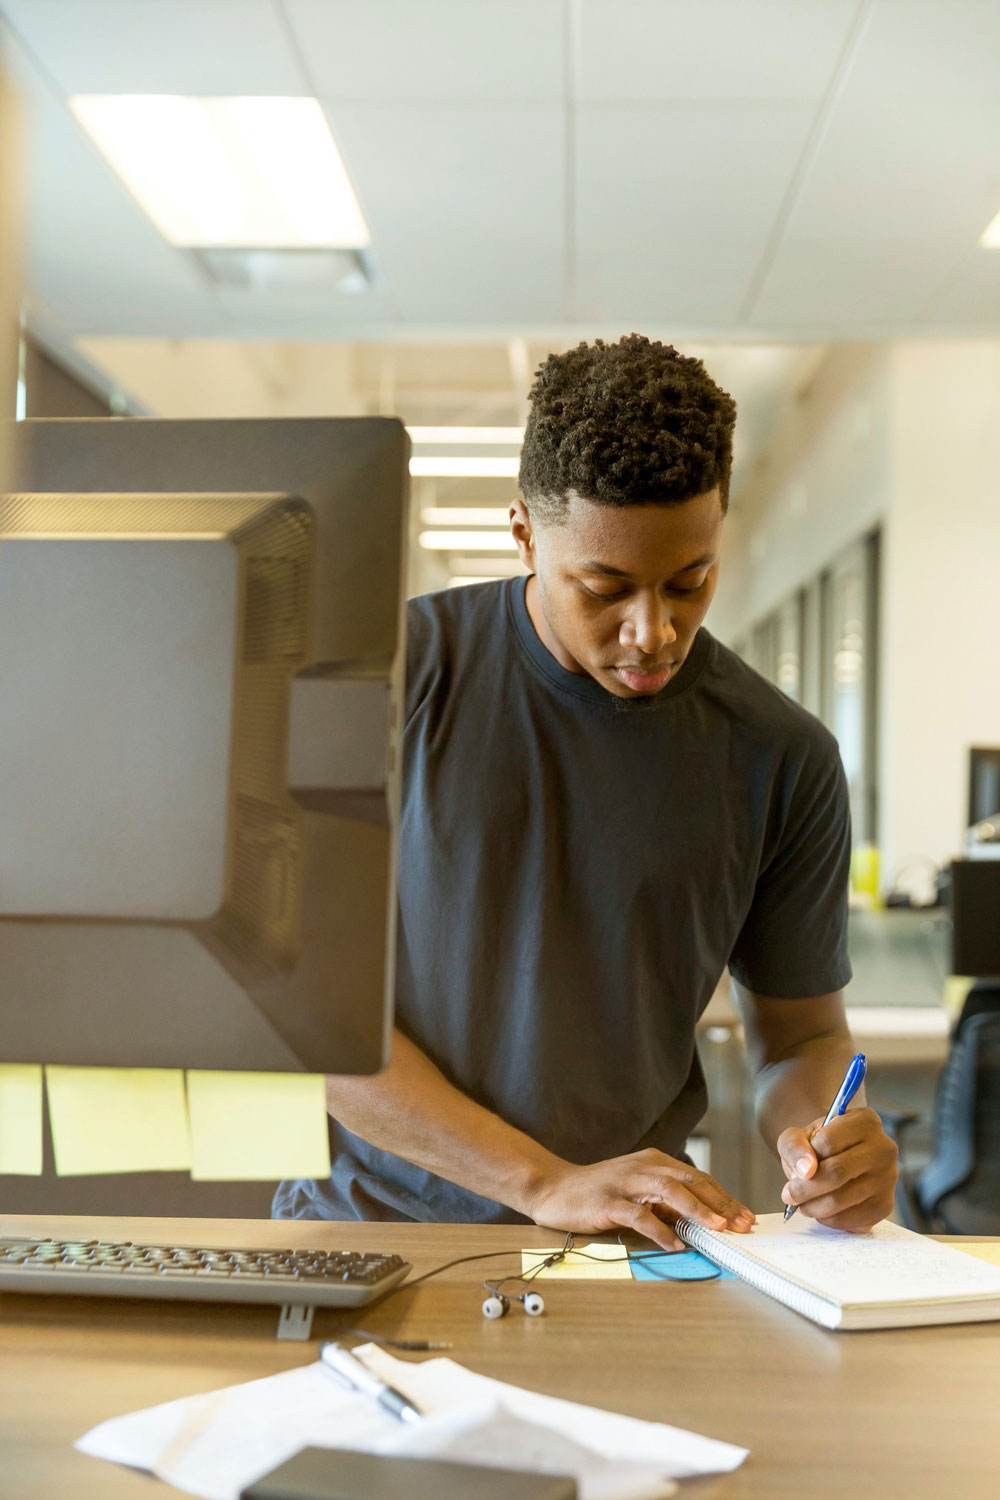 Young man working at a desk on a computer writing something down